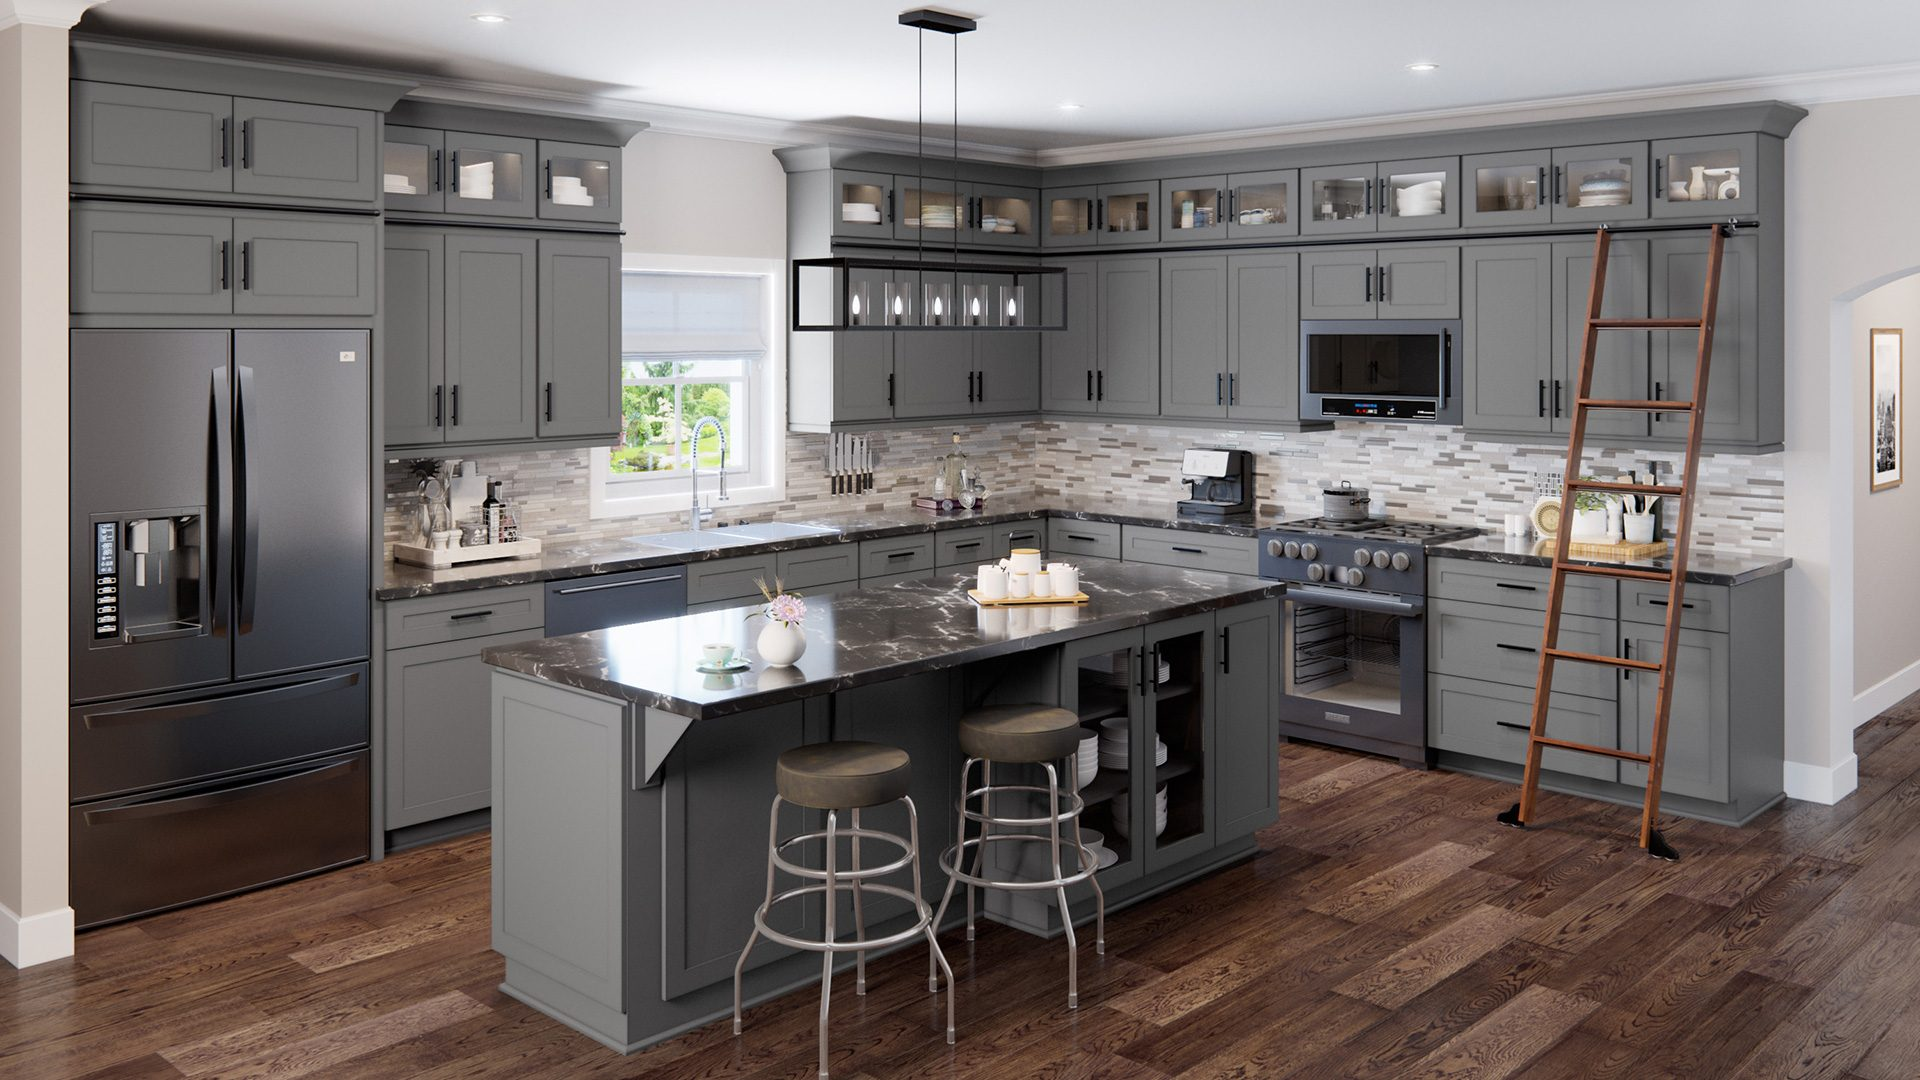 Shaker-style cabinets paired with modern appliances